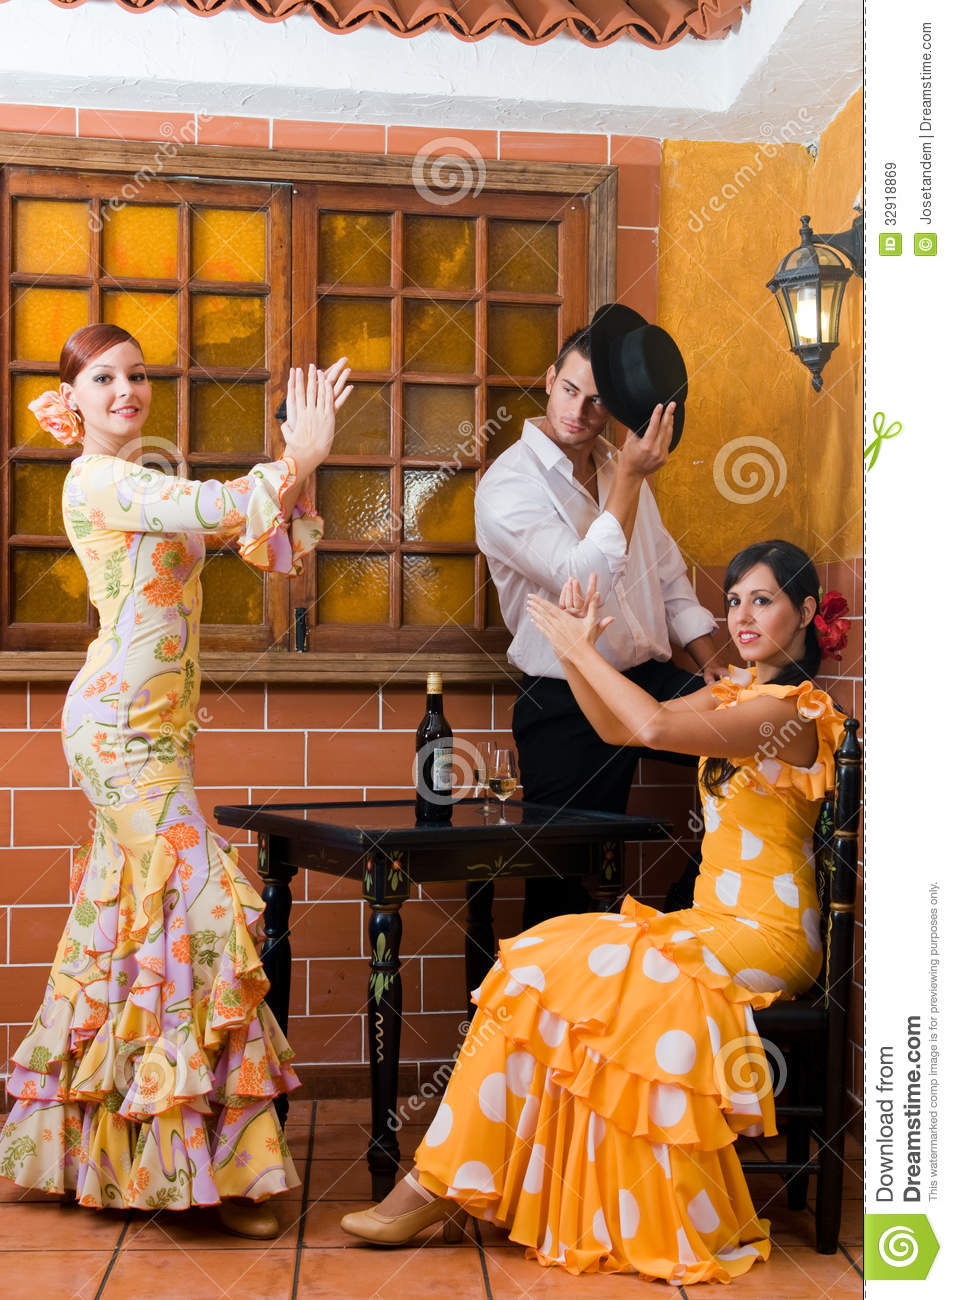 Women and man in traditional flamenco dresses dance during the Feria de Abril on April Spain  sc 1 st  Dreamstime.com & Women And Man In Traditional Flamenco Dresses Dance During The Feria ...